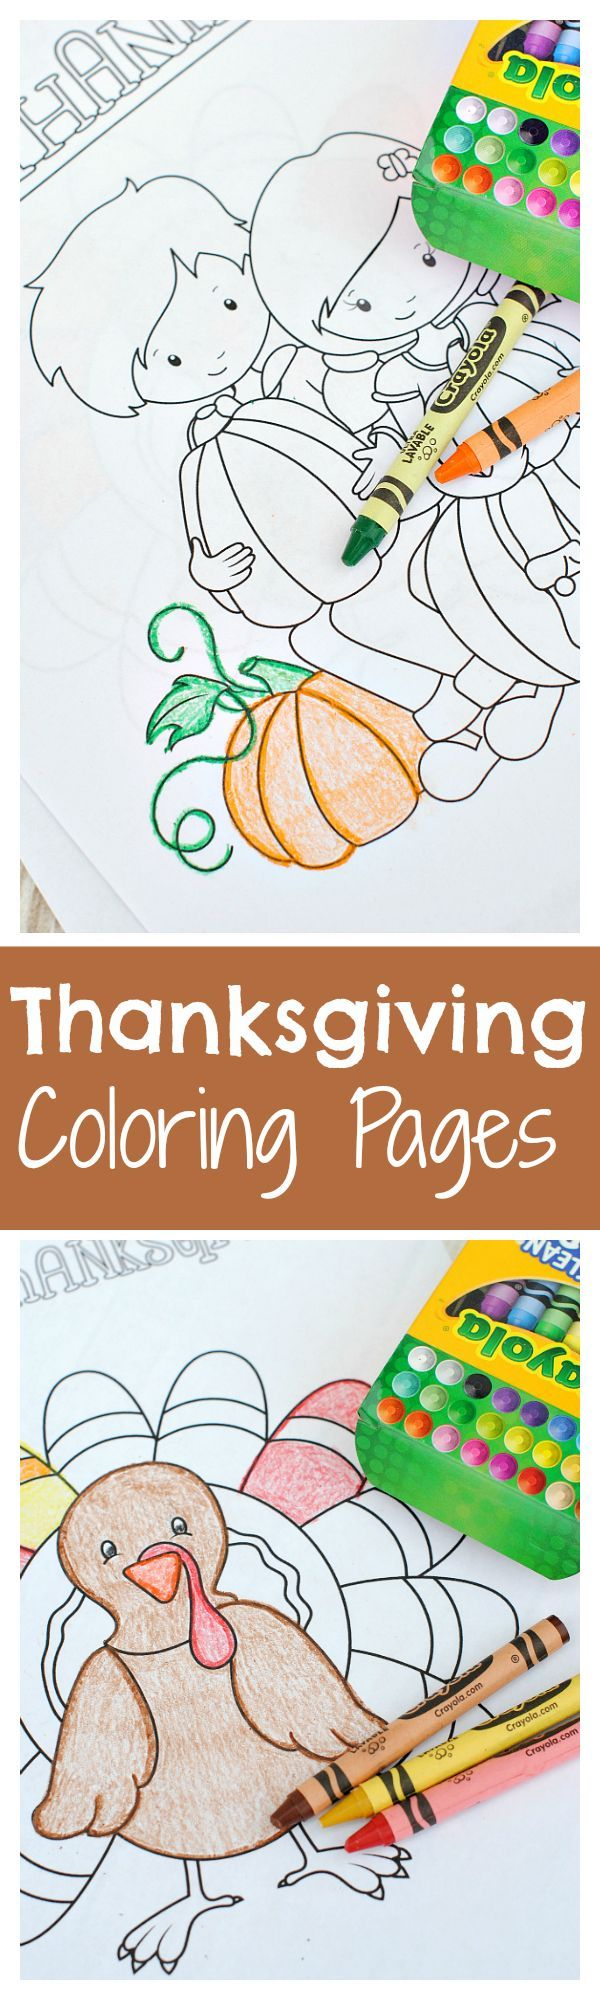 Perfect for the kiddos joining you this Thanksgiving, these coloring pages are sure to bring fun to your dinner!